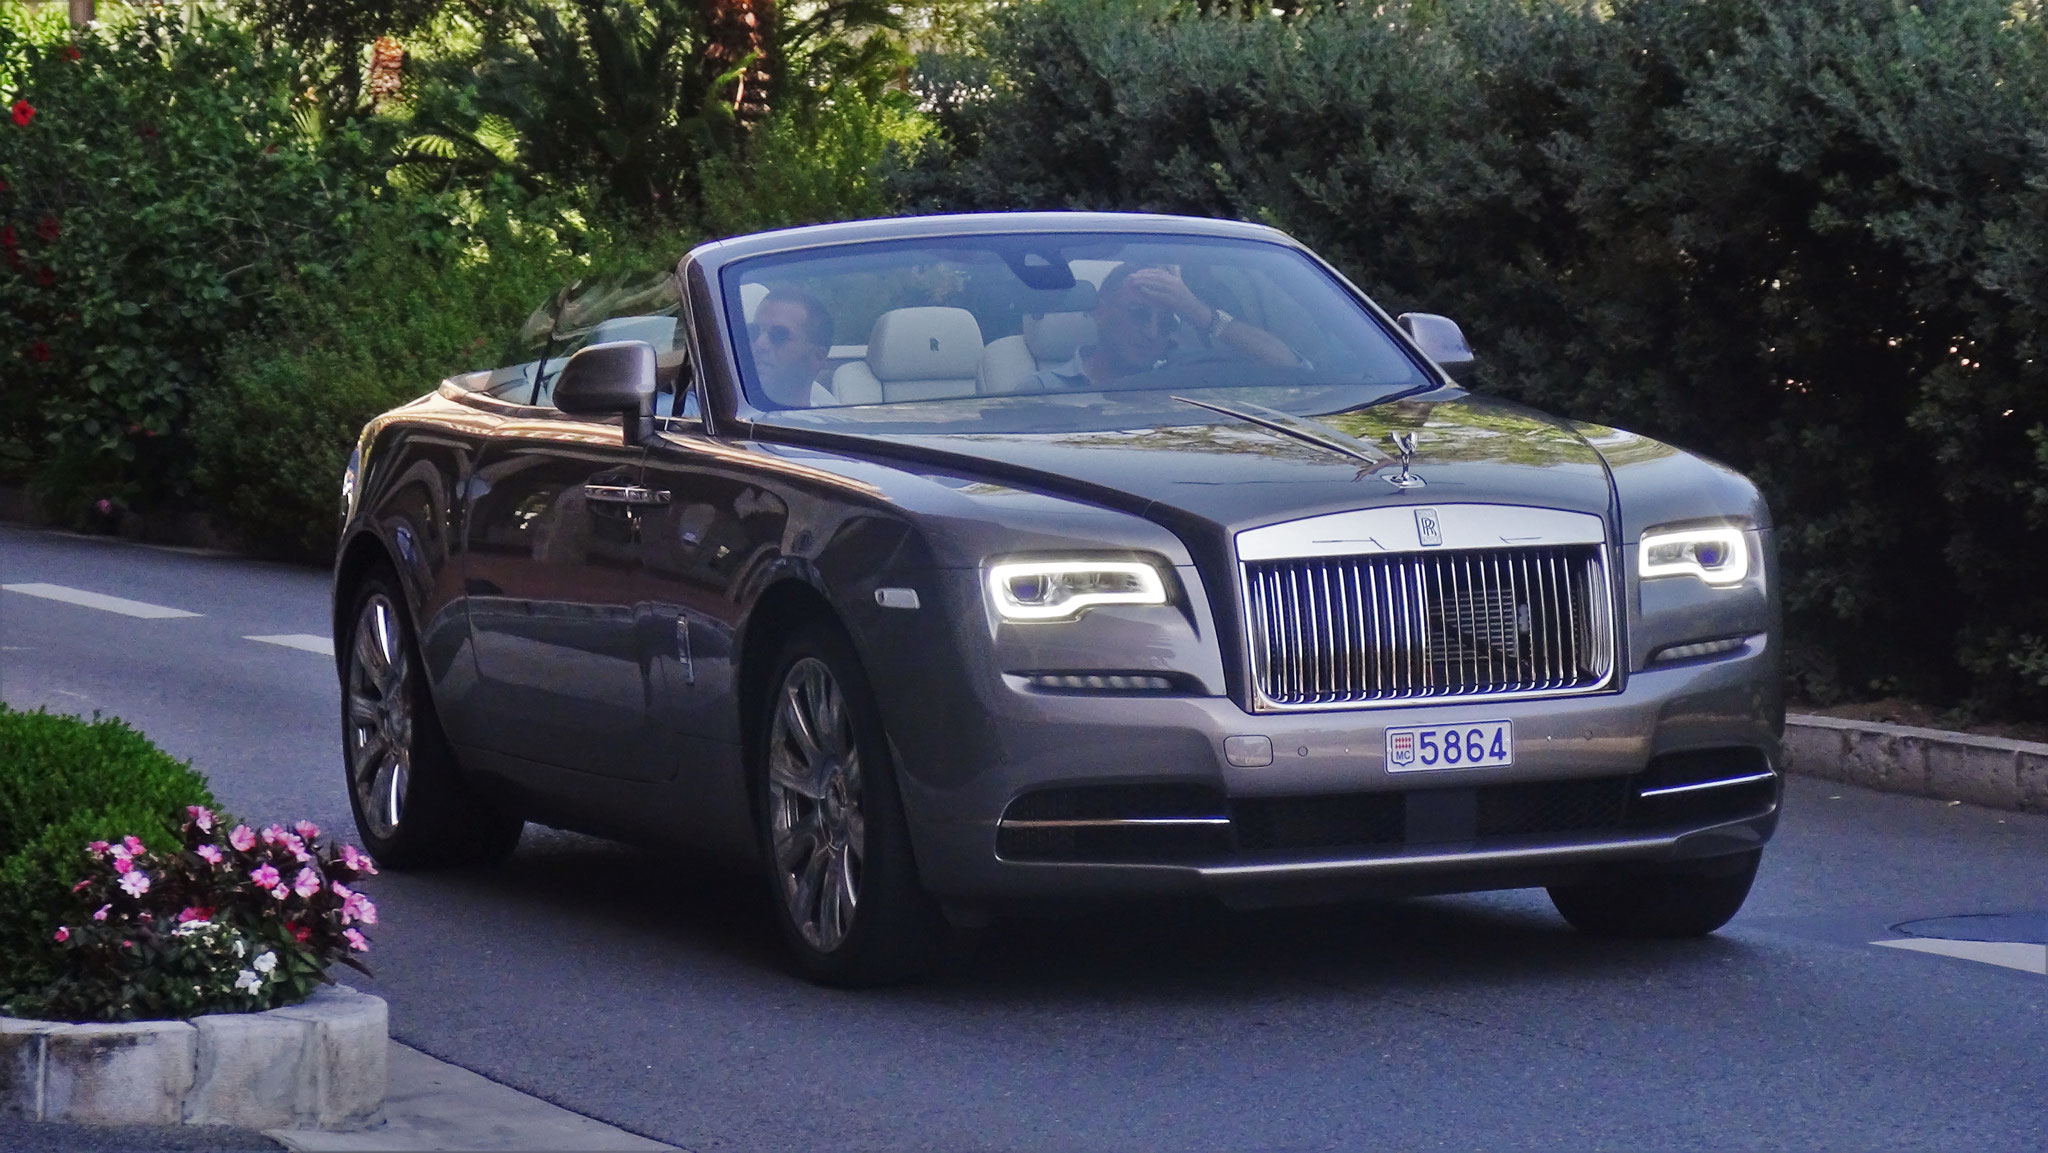 Rolls Royce Dawn - 5864 (MC)